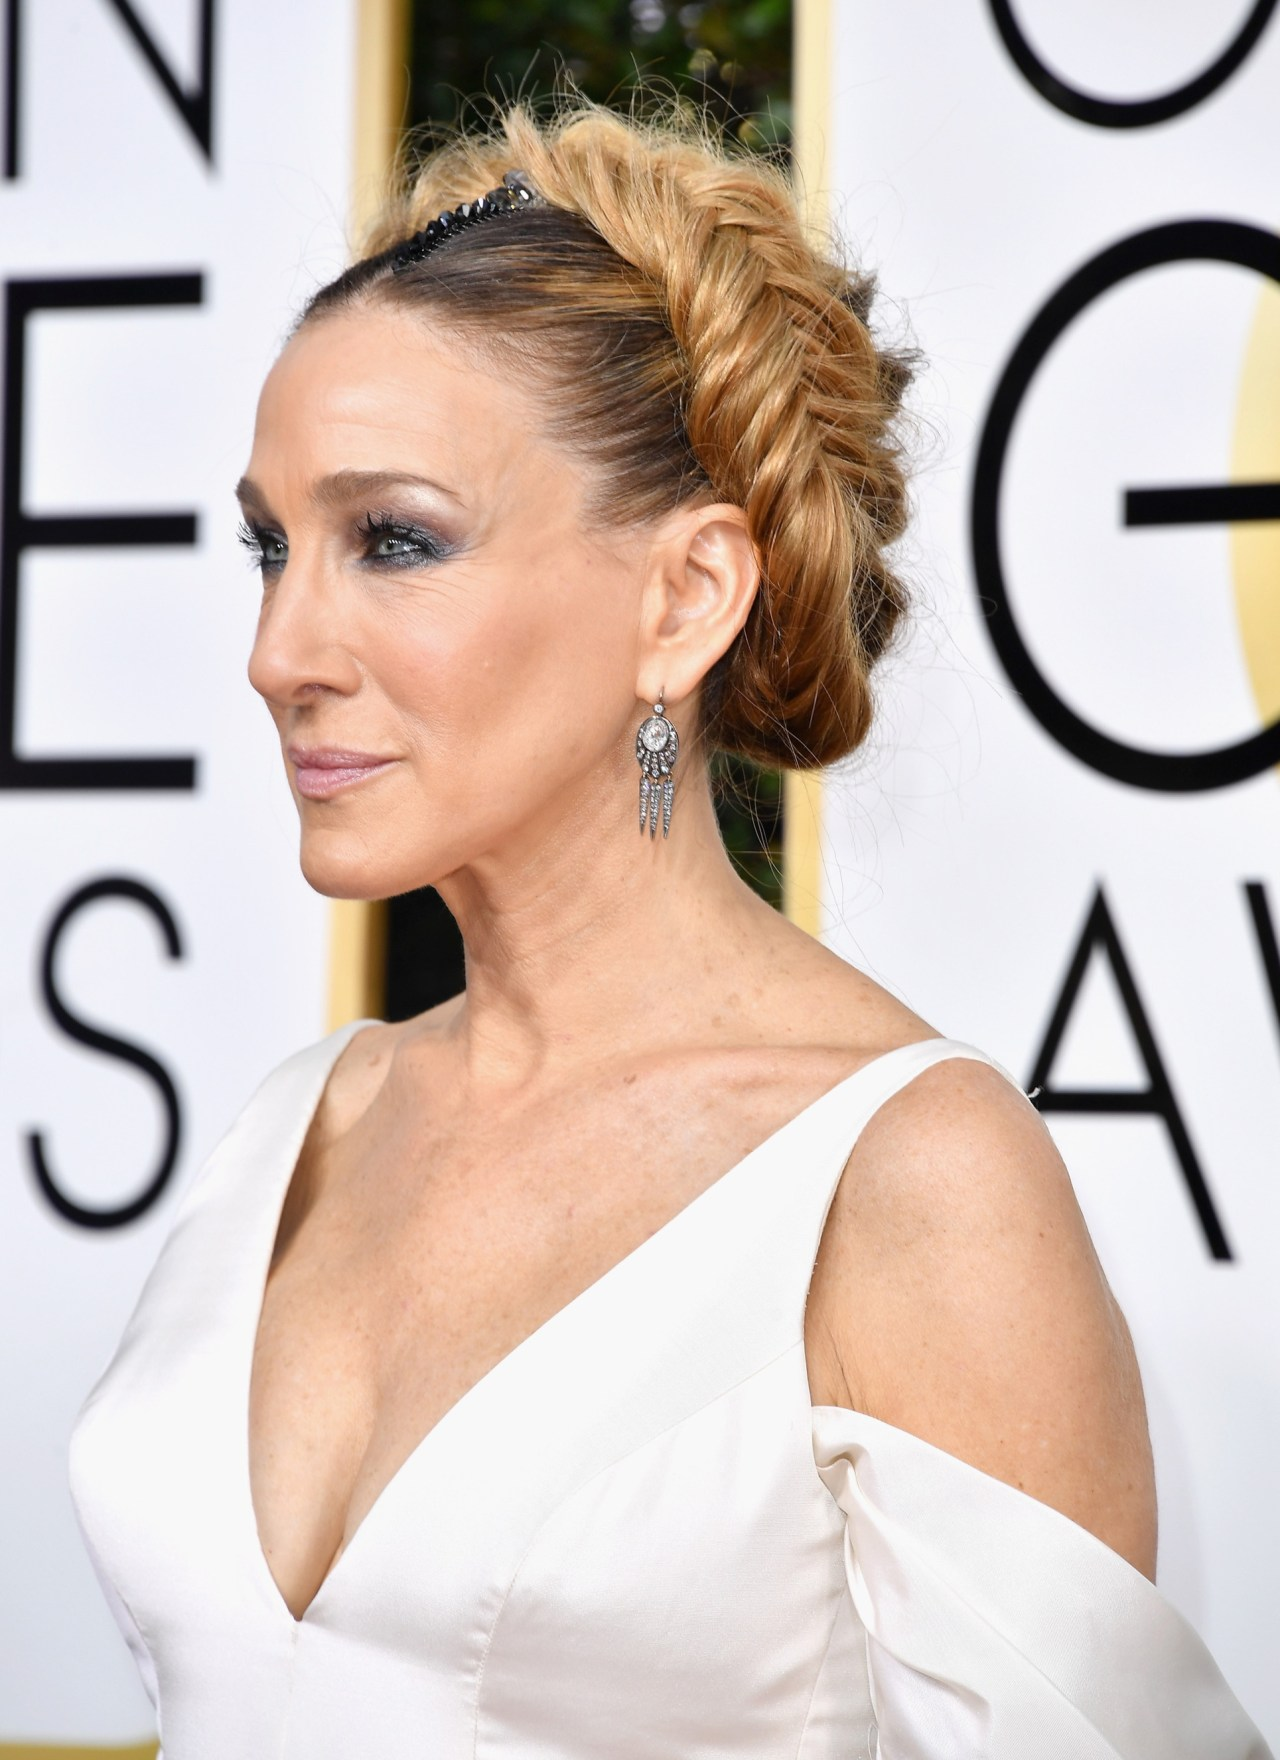 My Favorite Beauty Looks from the 2017 Golden Globes